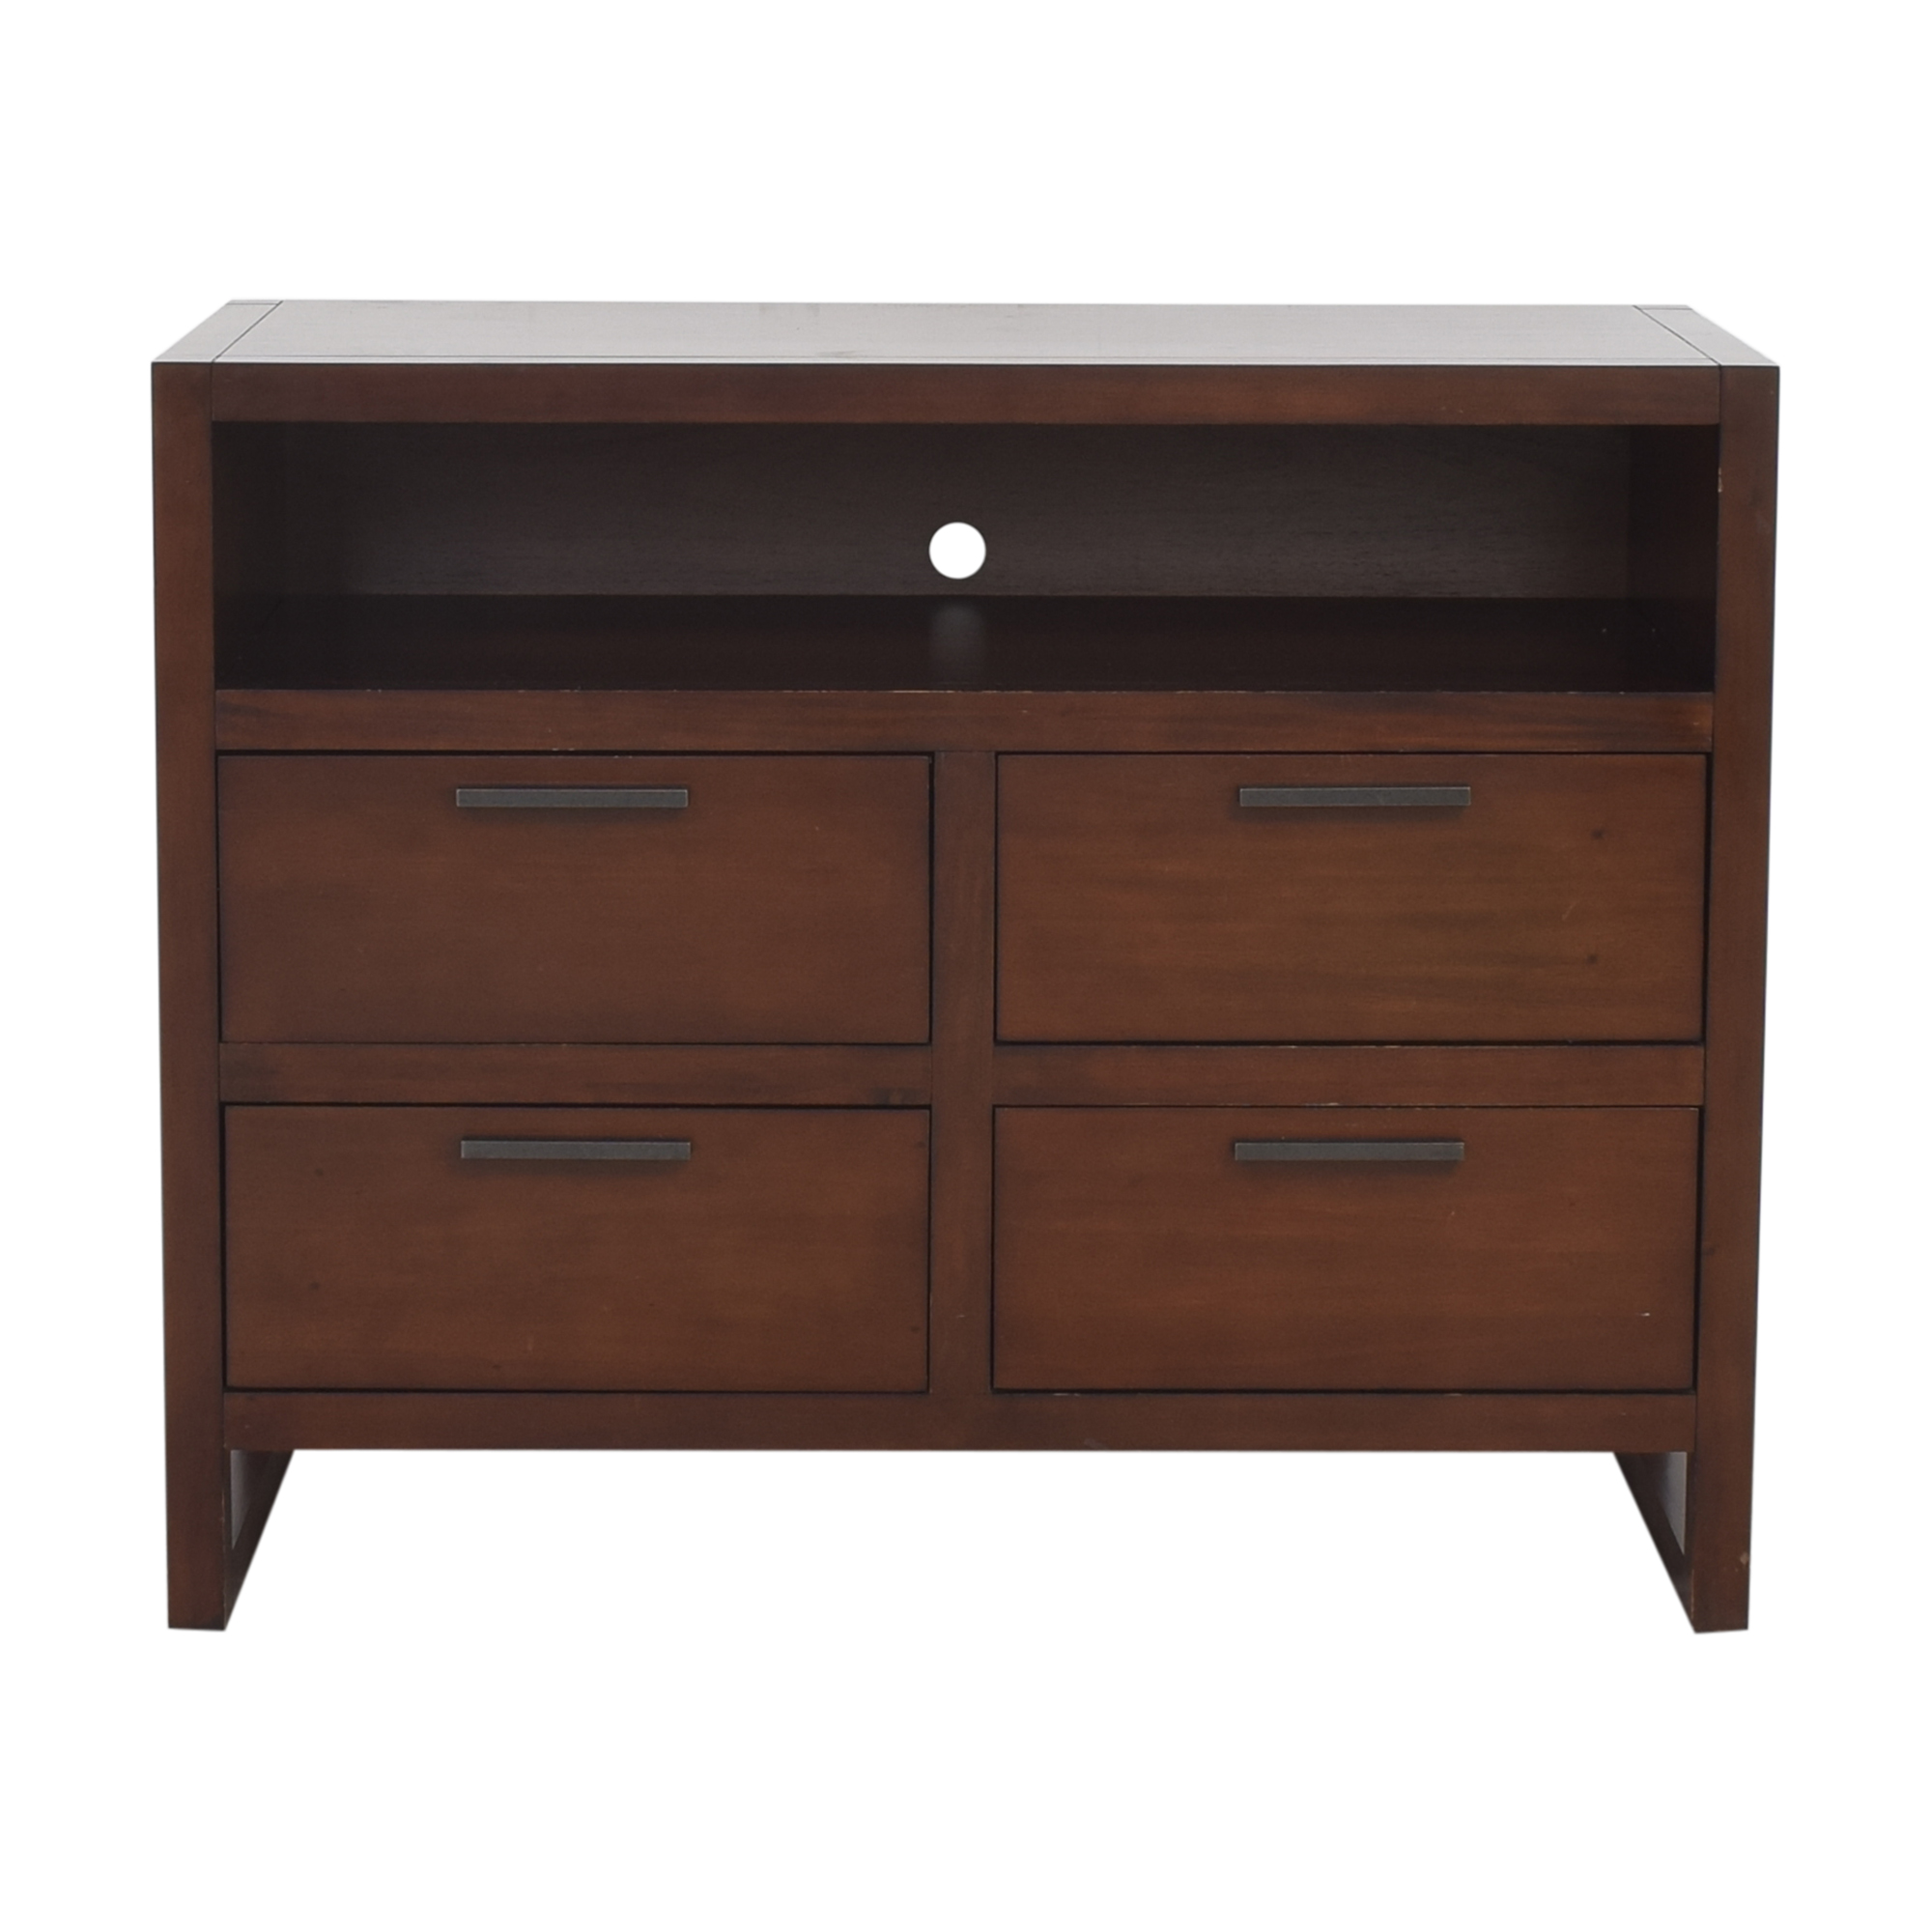 Casana Furniture Media Unit sale